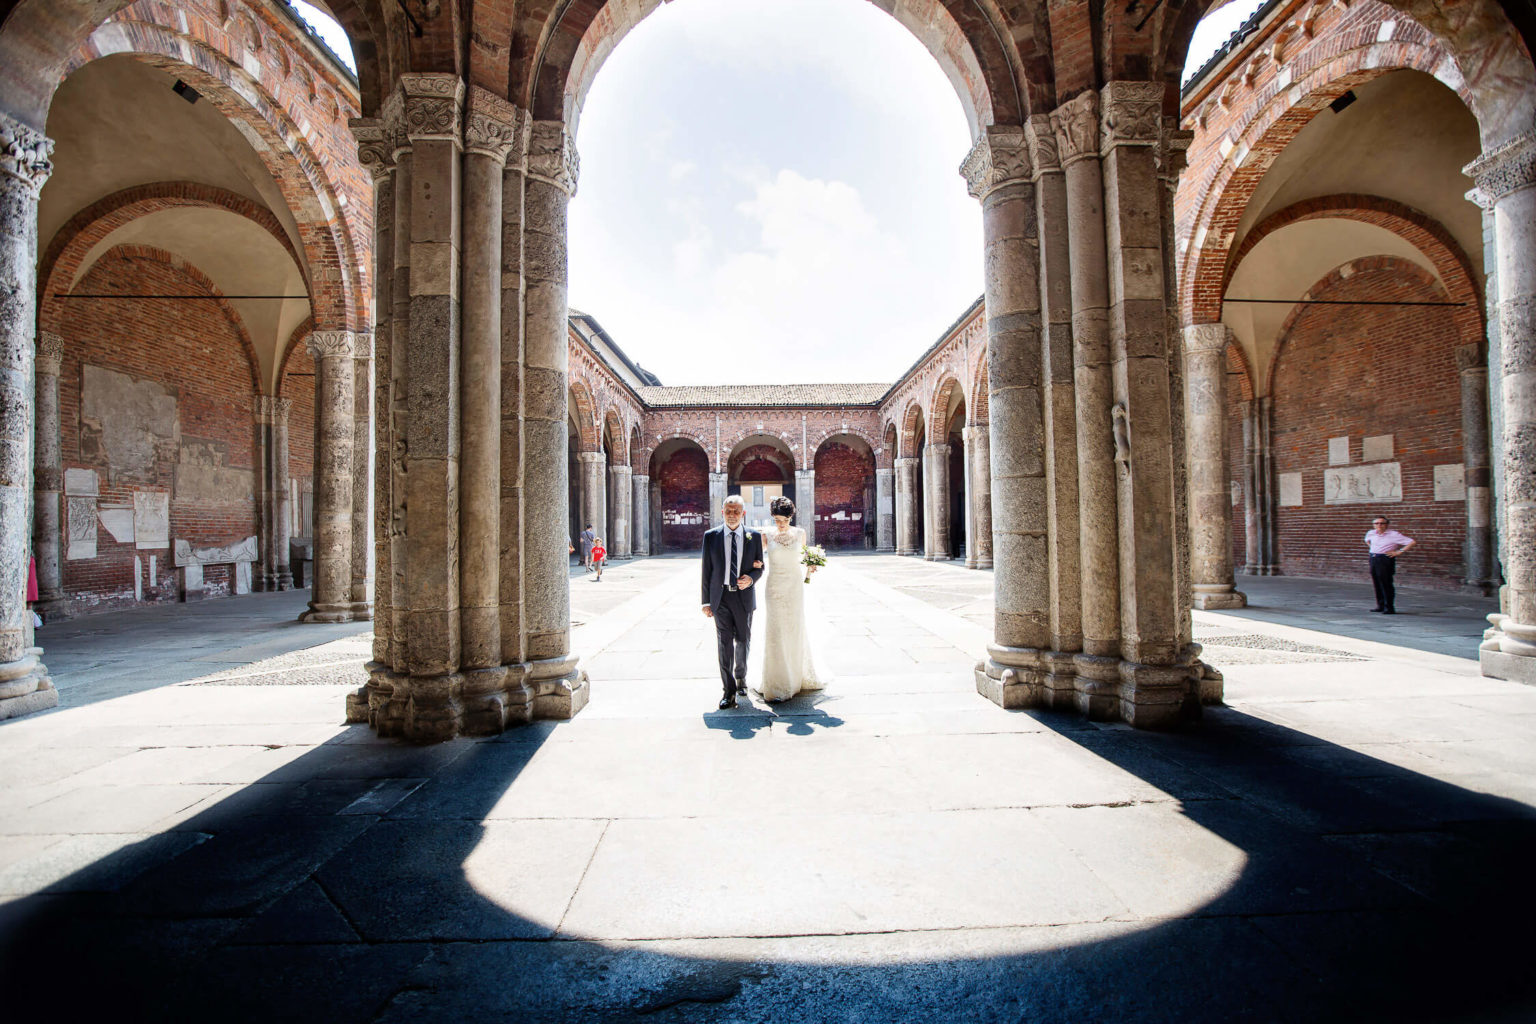 The bride arrives with her dad, a beautiful view of the Basilica of Sant'Ambrogio in Milan, wedding photos by Nino Lombardo